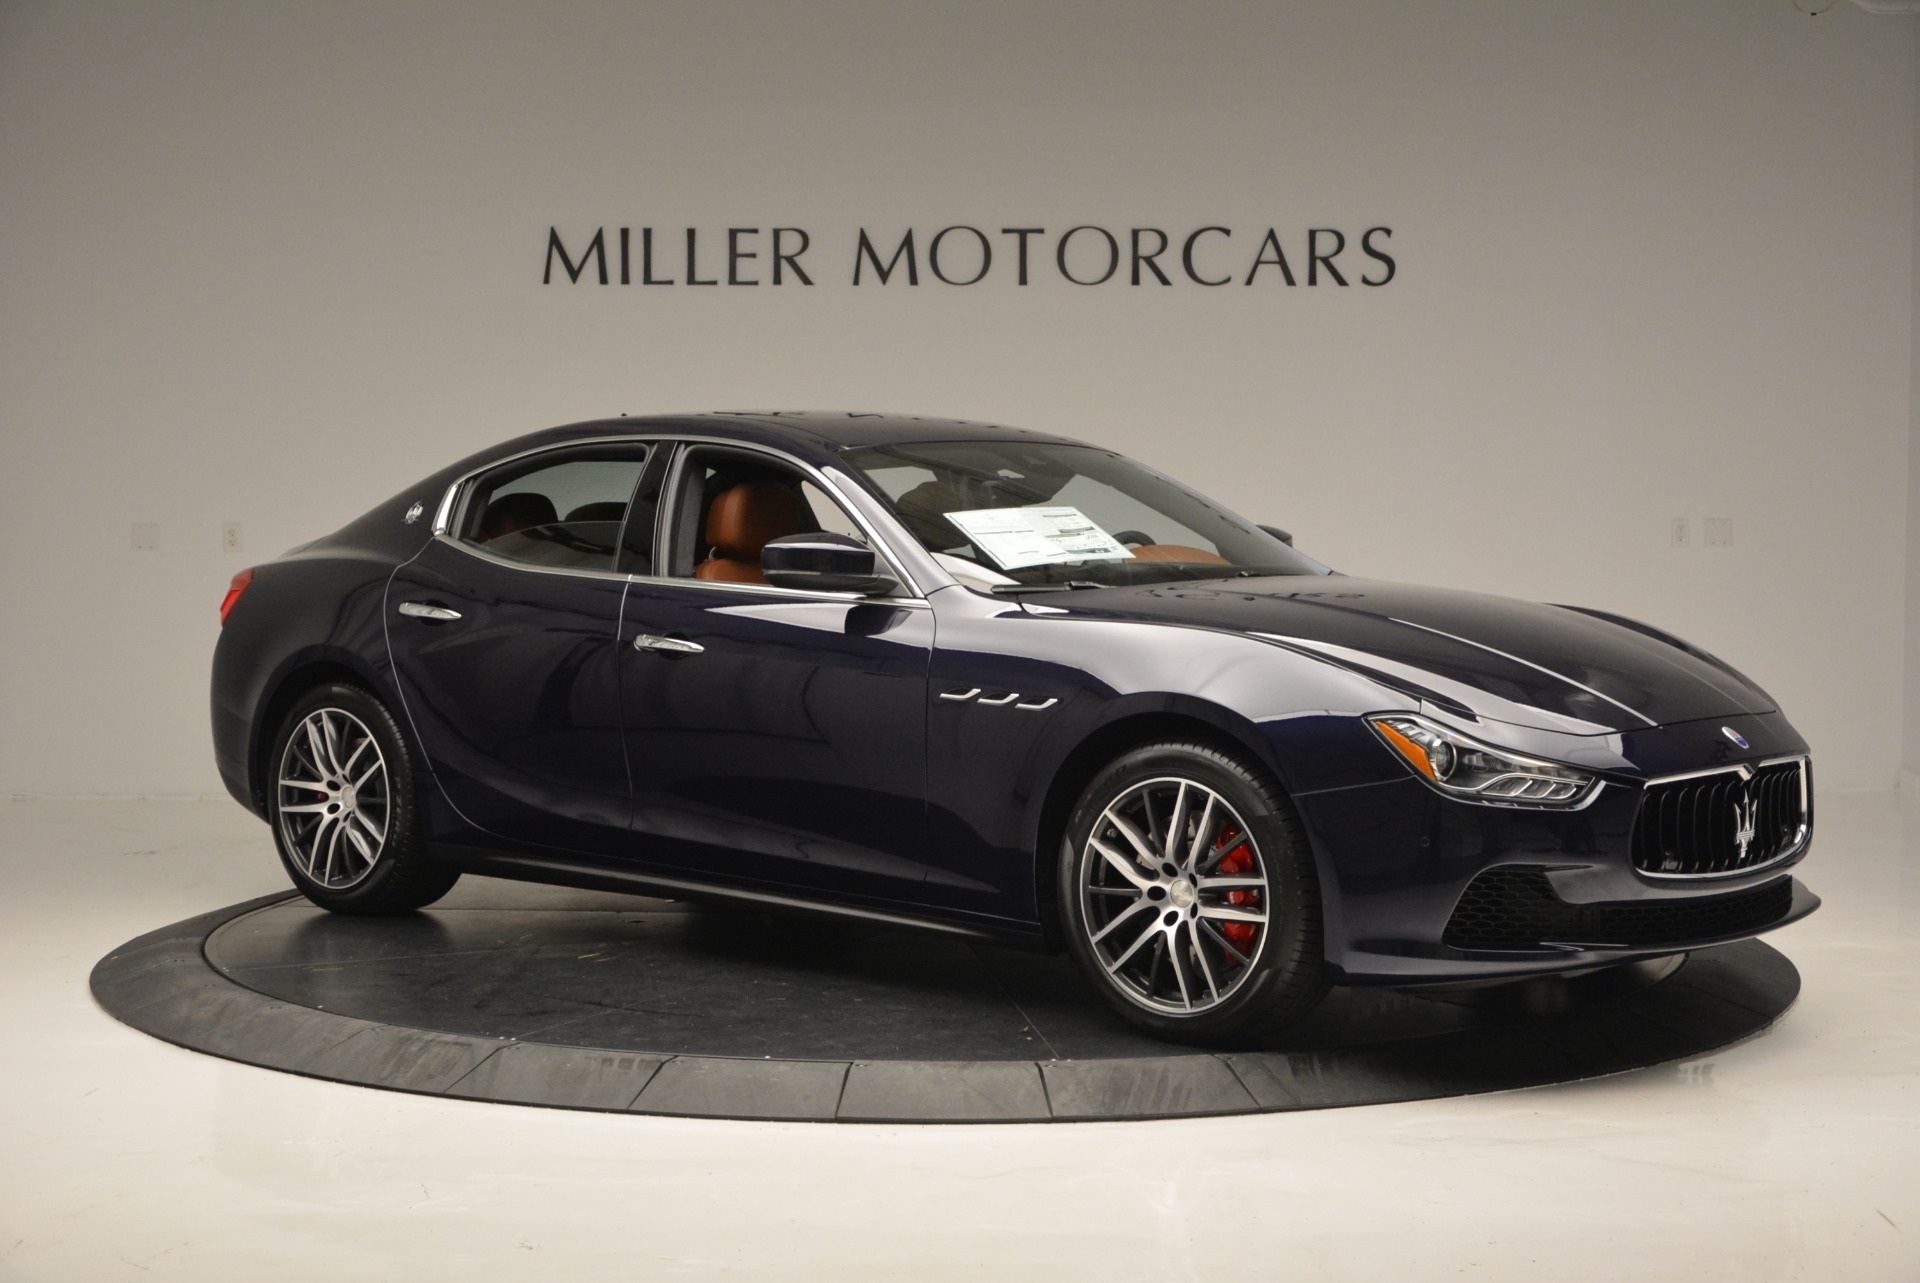 Used 2017 Maserati Ghibli S Q4 - EX Loaner For Sale In Greenwich, CT 567_p10